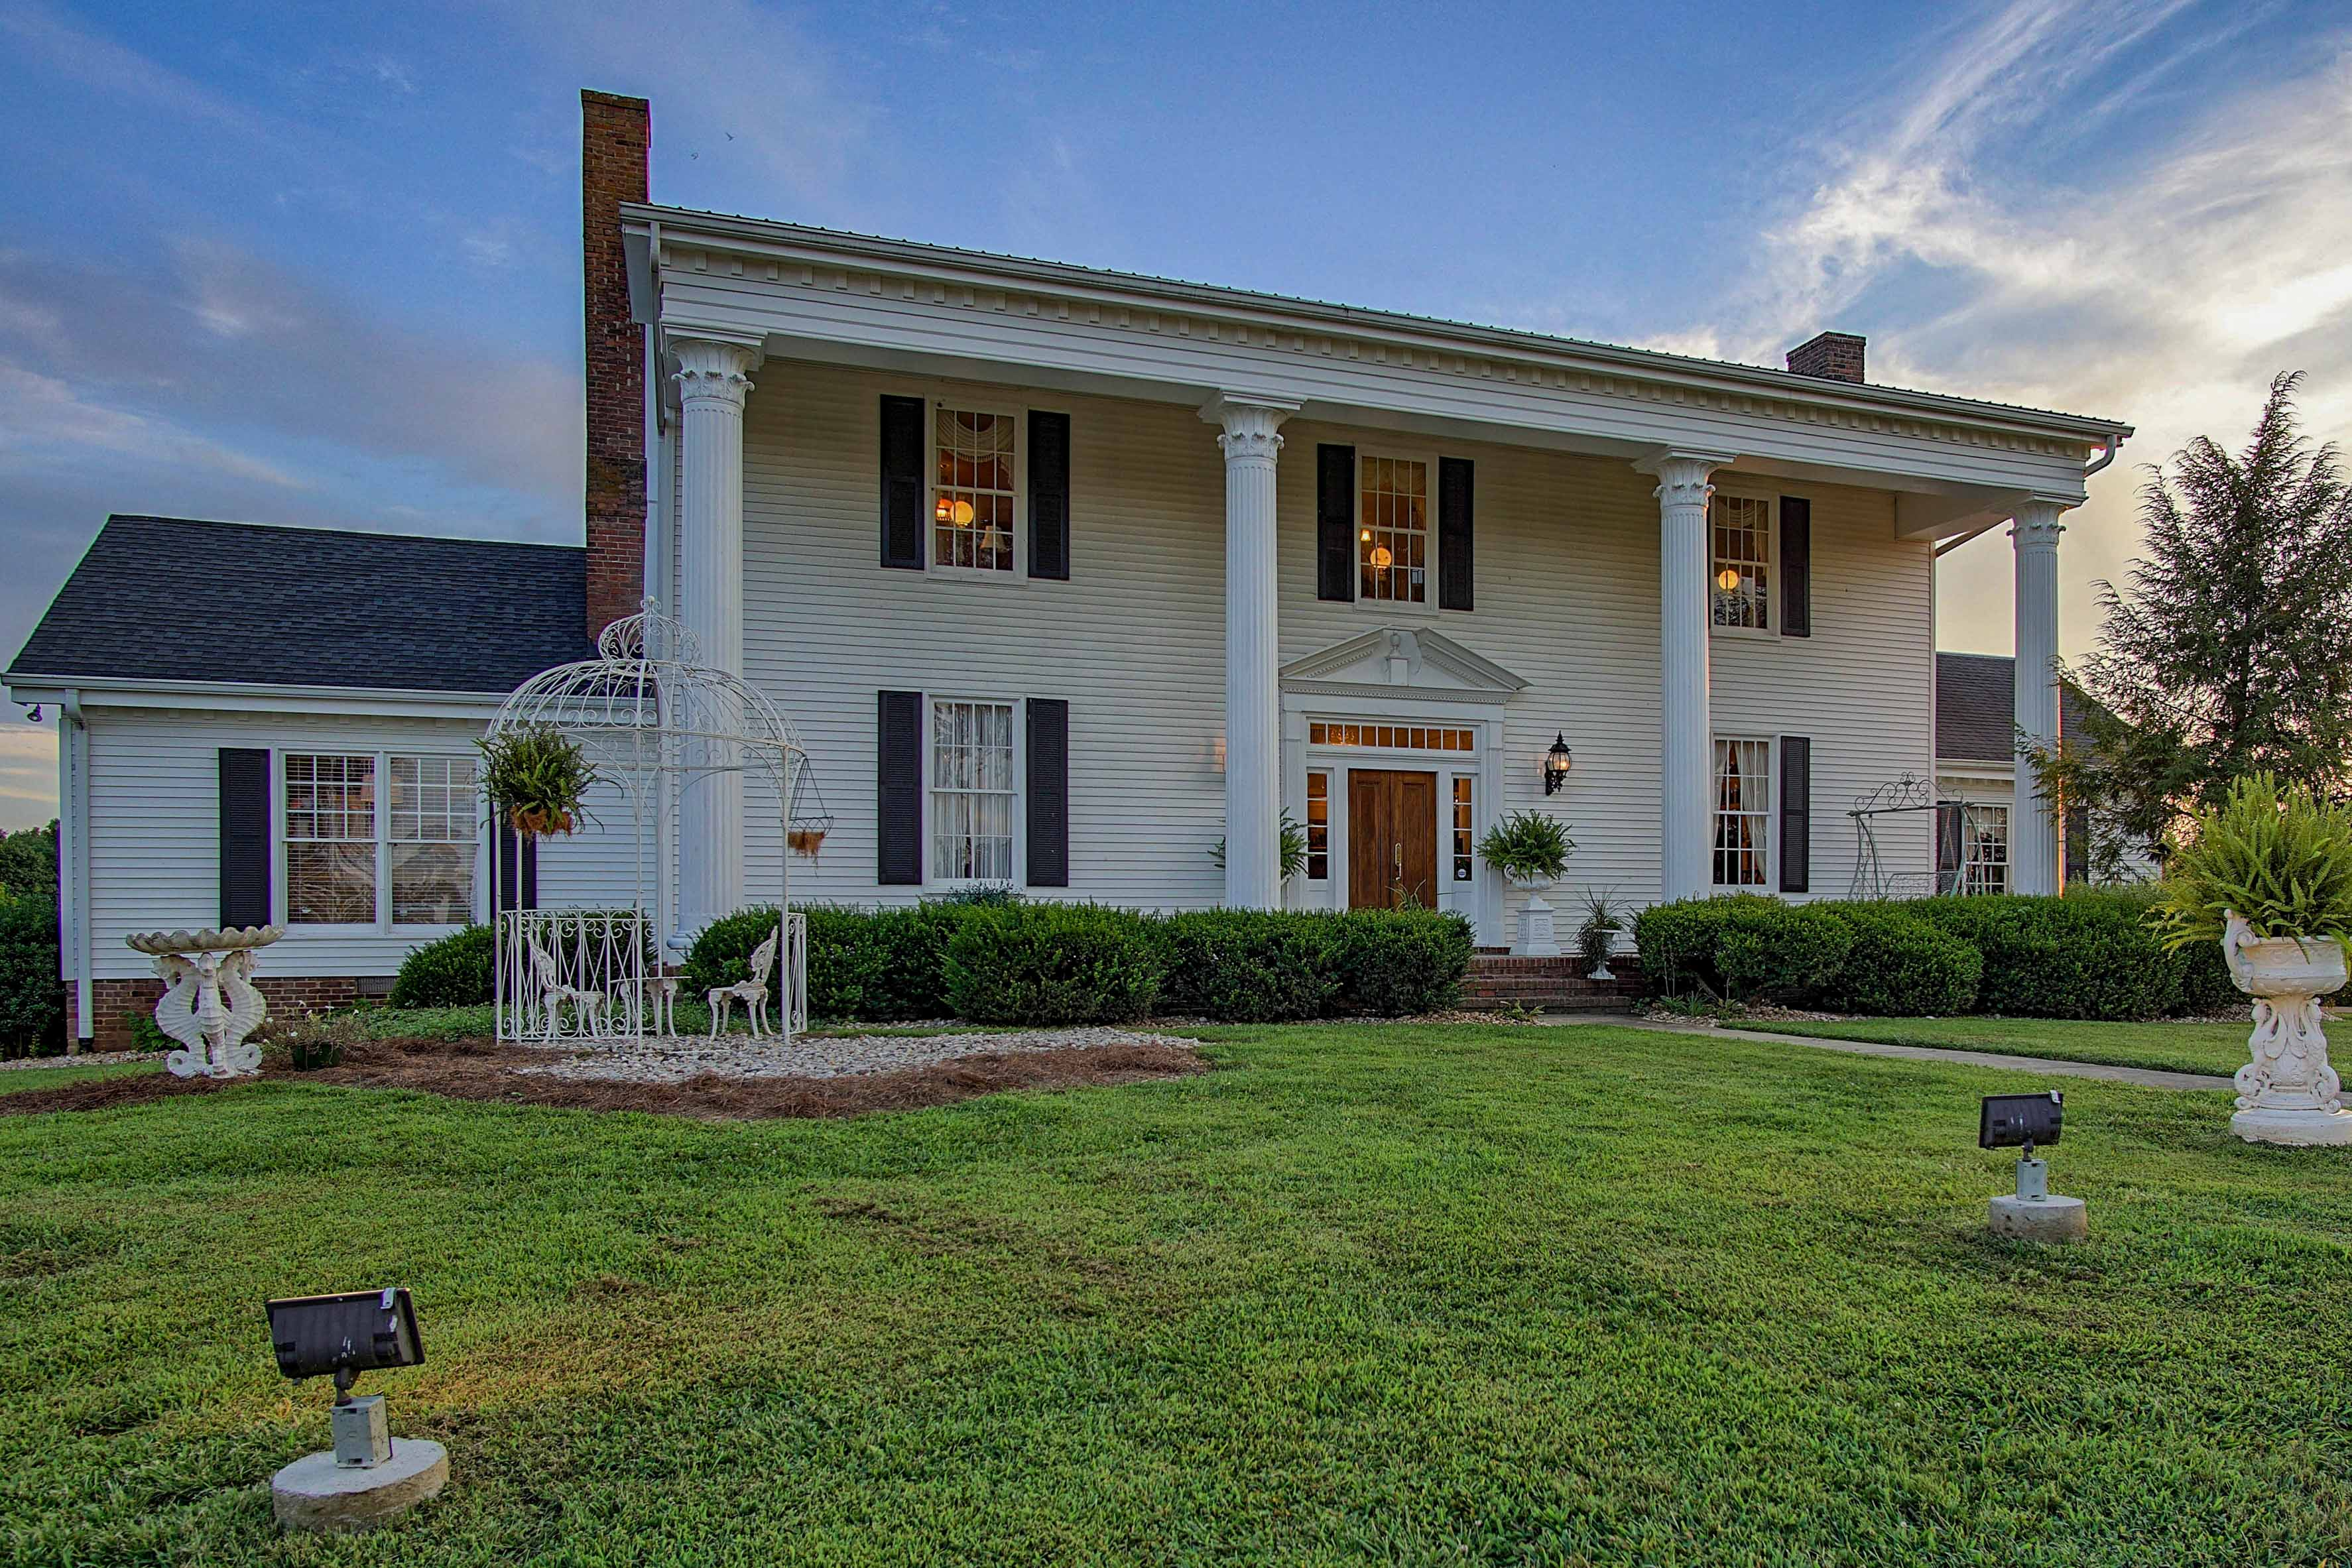 This luxurious home will serve as the perfect Cedar Hill vacation rental.